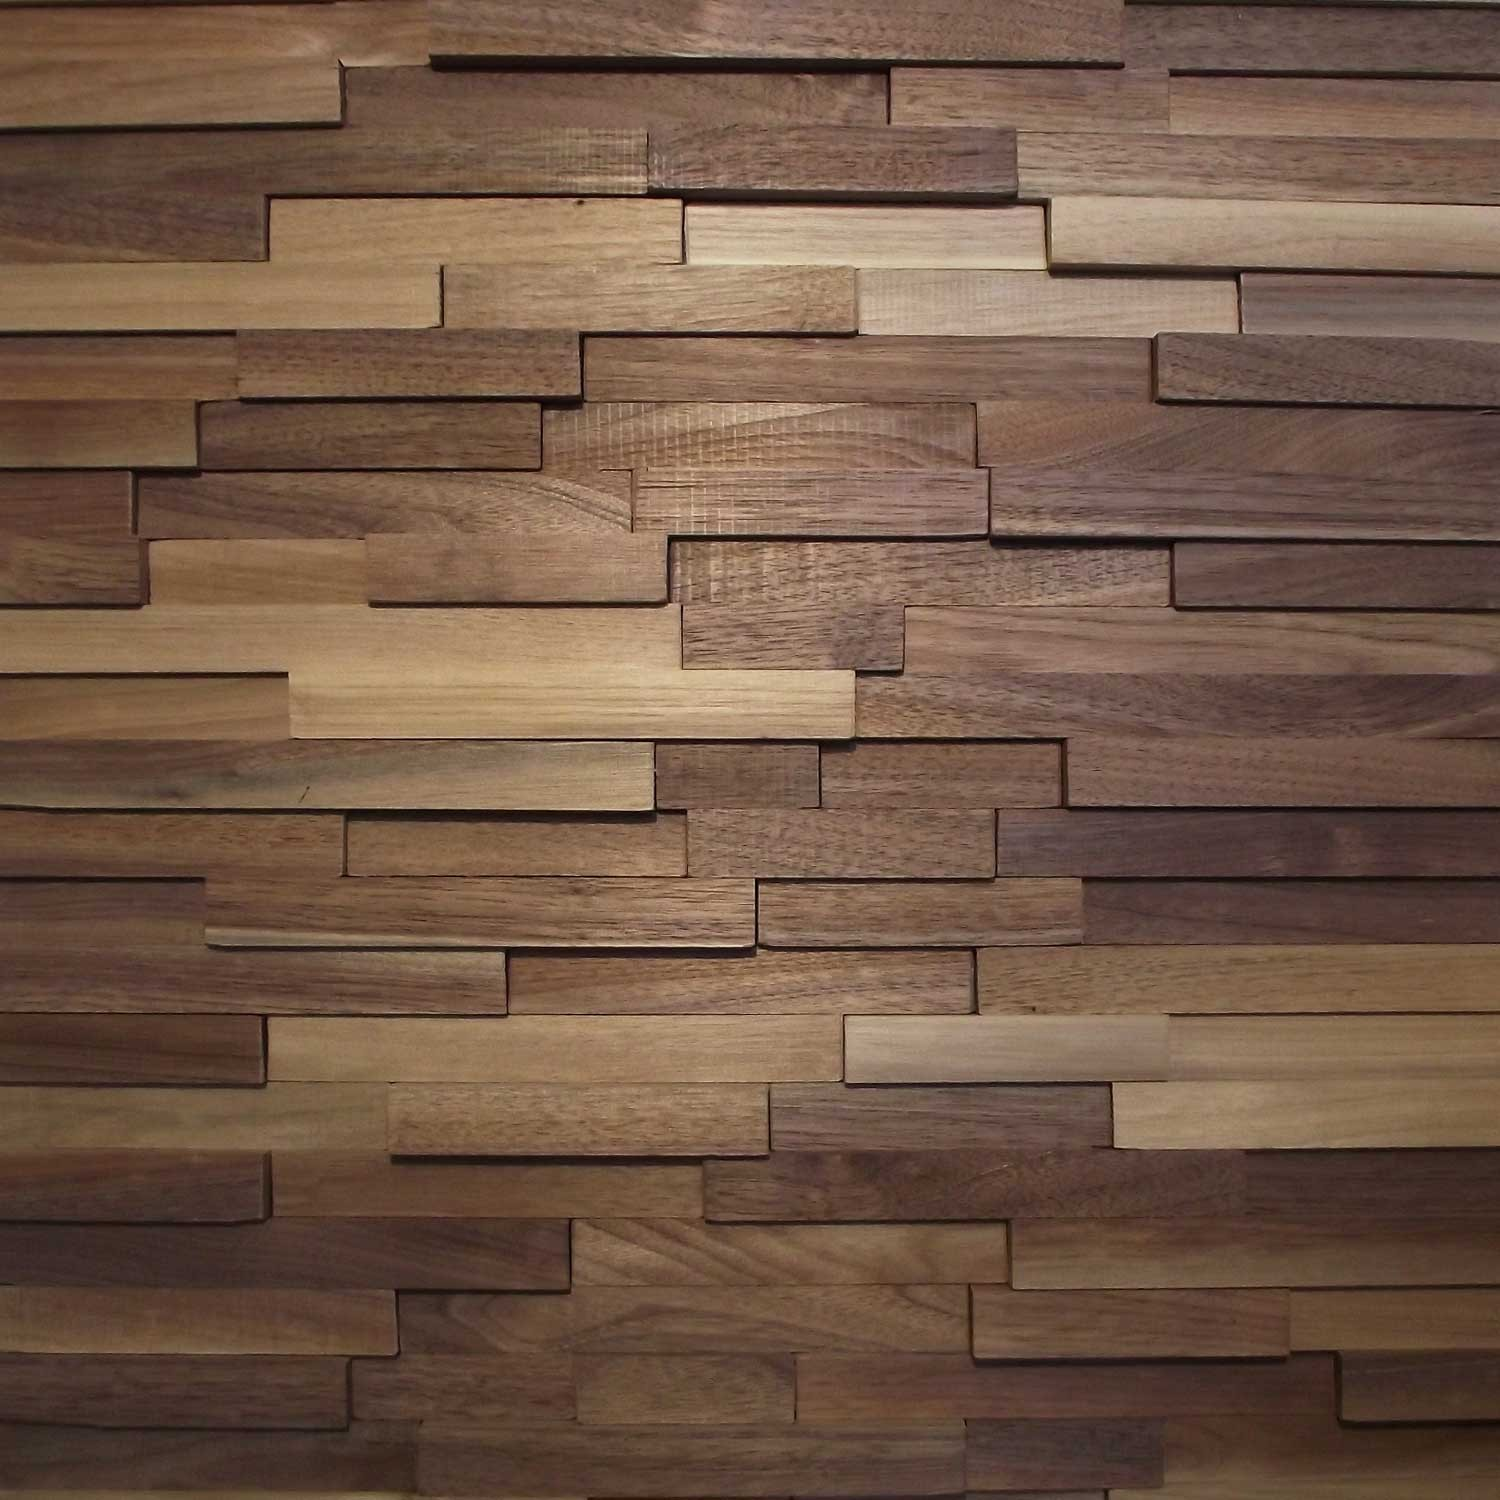 Sarasota and venice fl real estate home decor trends Reclaimed woods